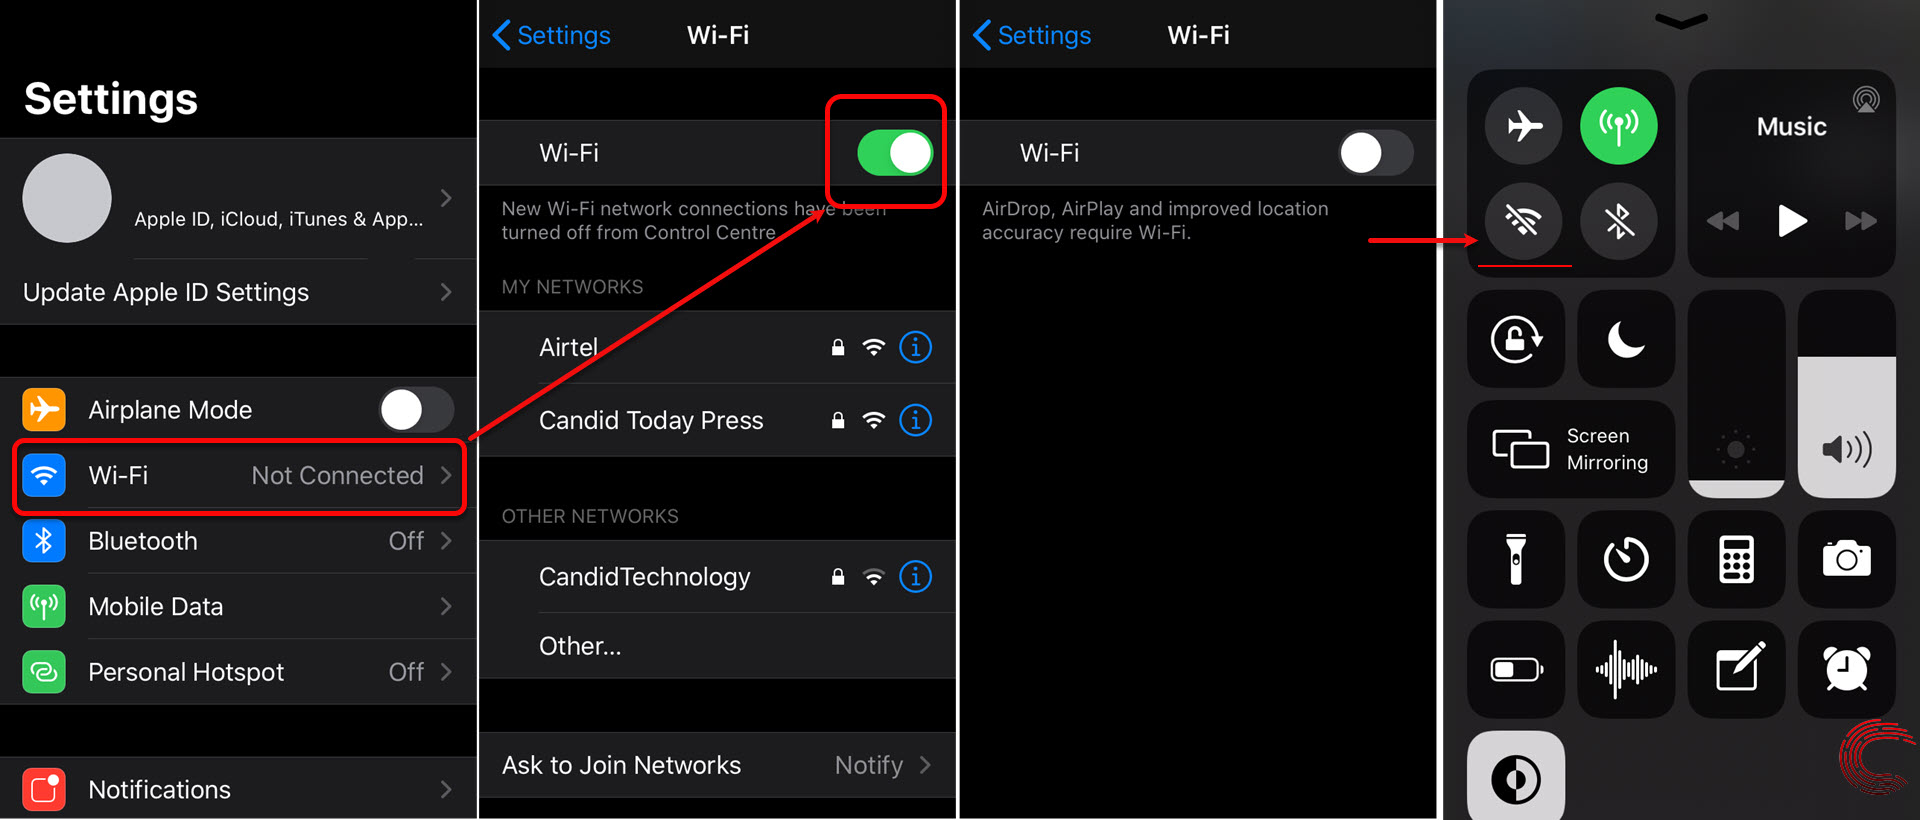 How to turn off WiFi and Bluetooth in iPhone (iOS 13, 12, 11)?